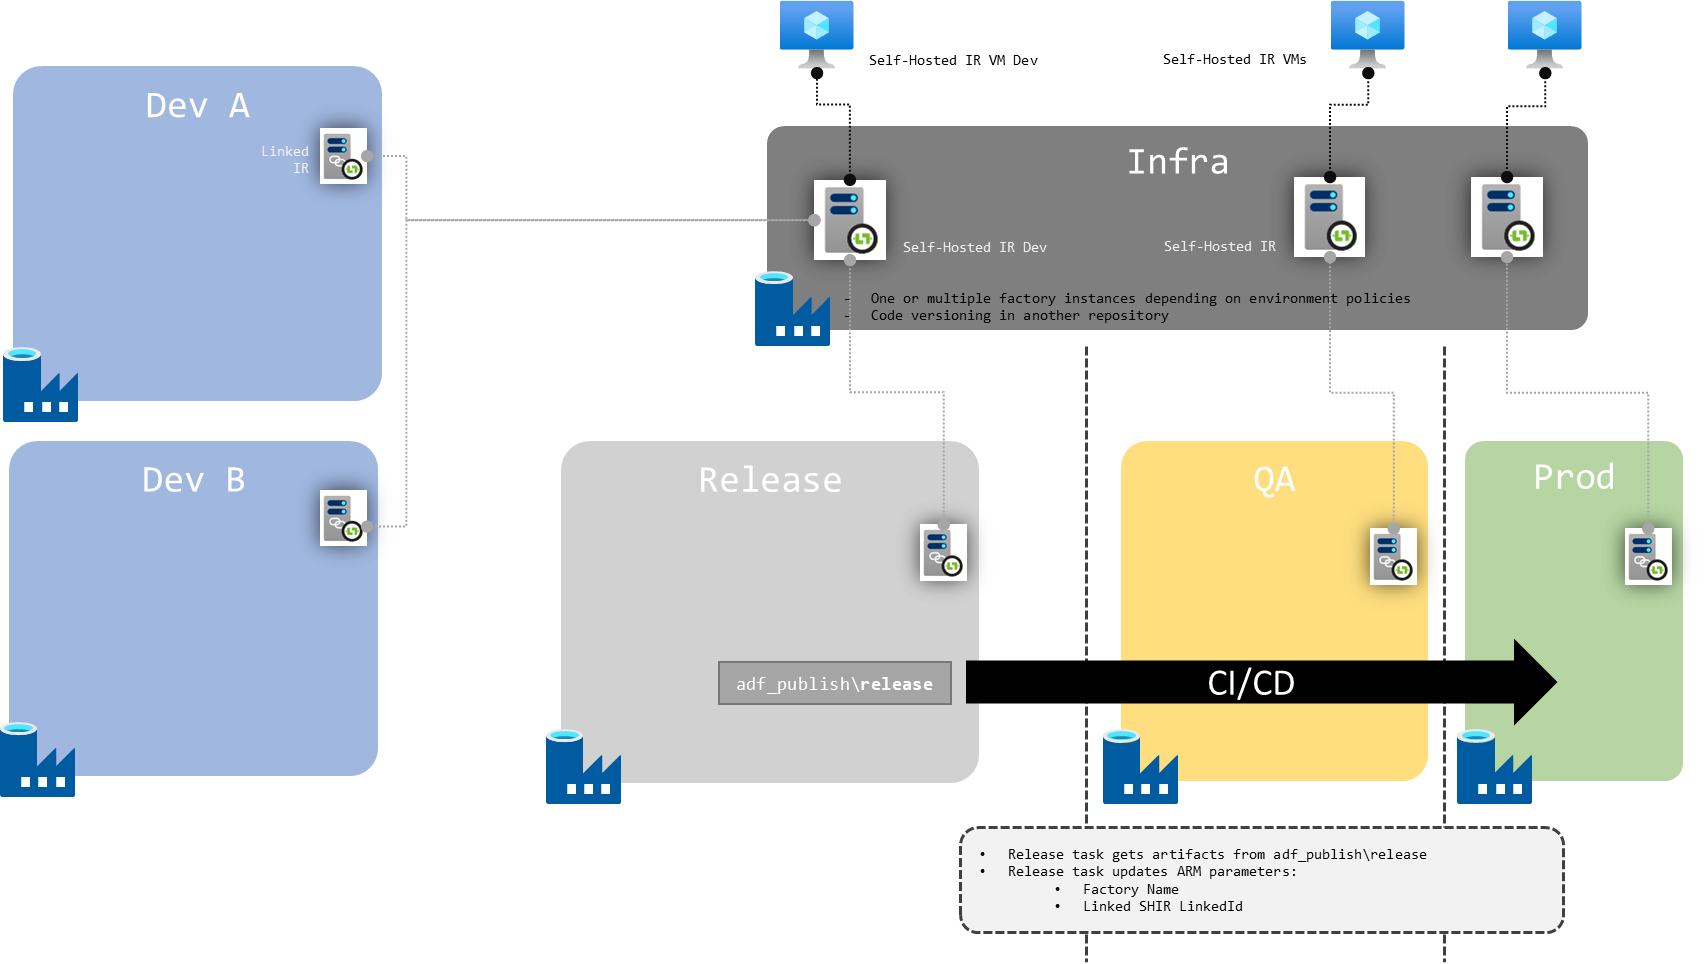 Schema of shared SHIR across environments for multiple dev factory instances